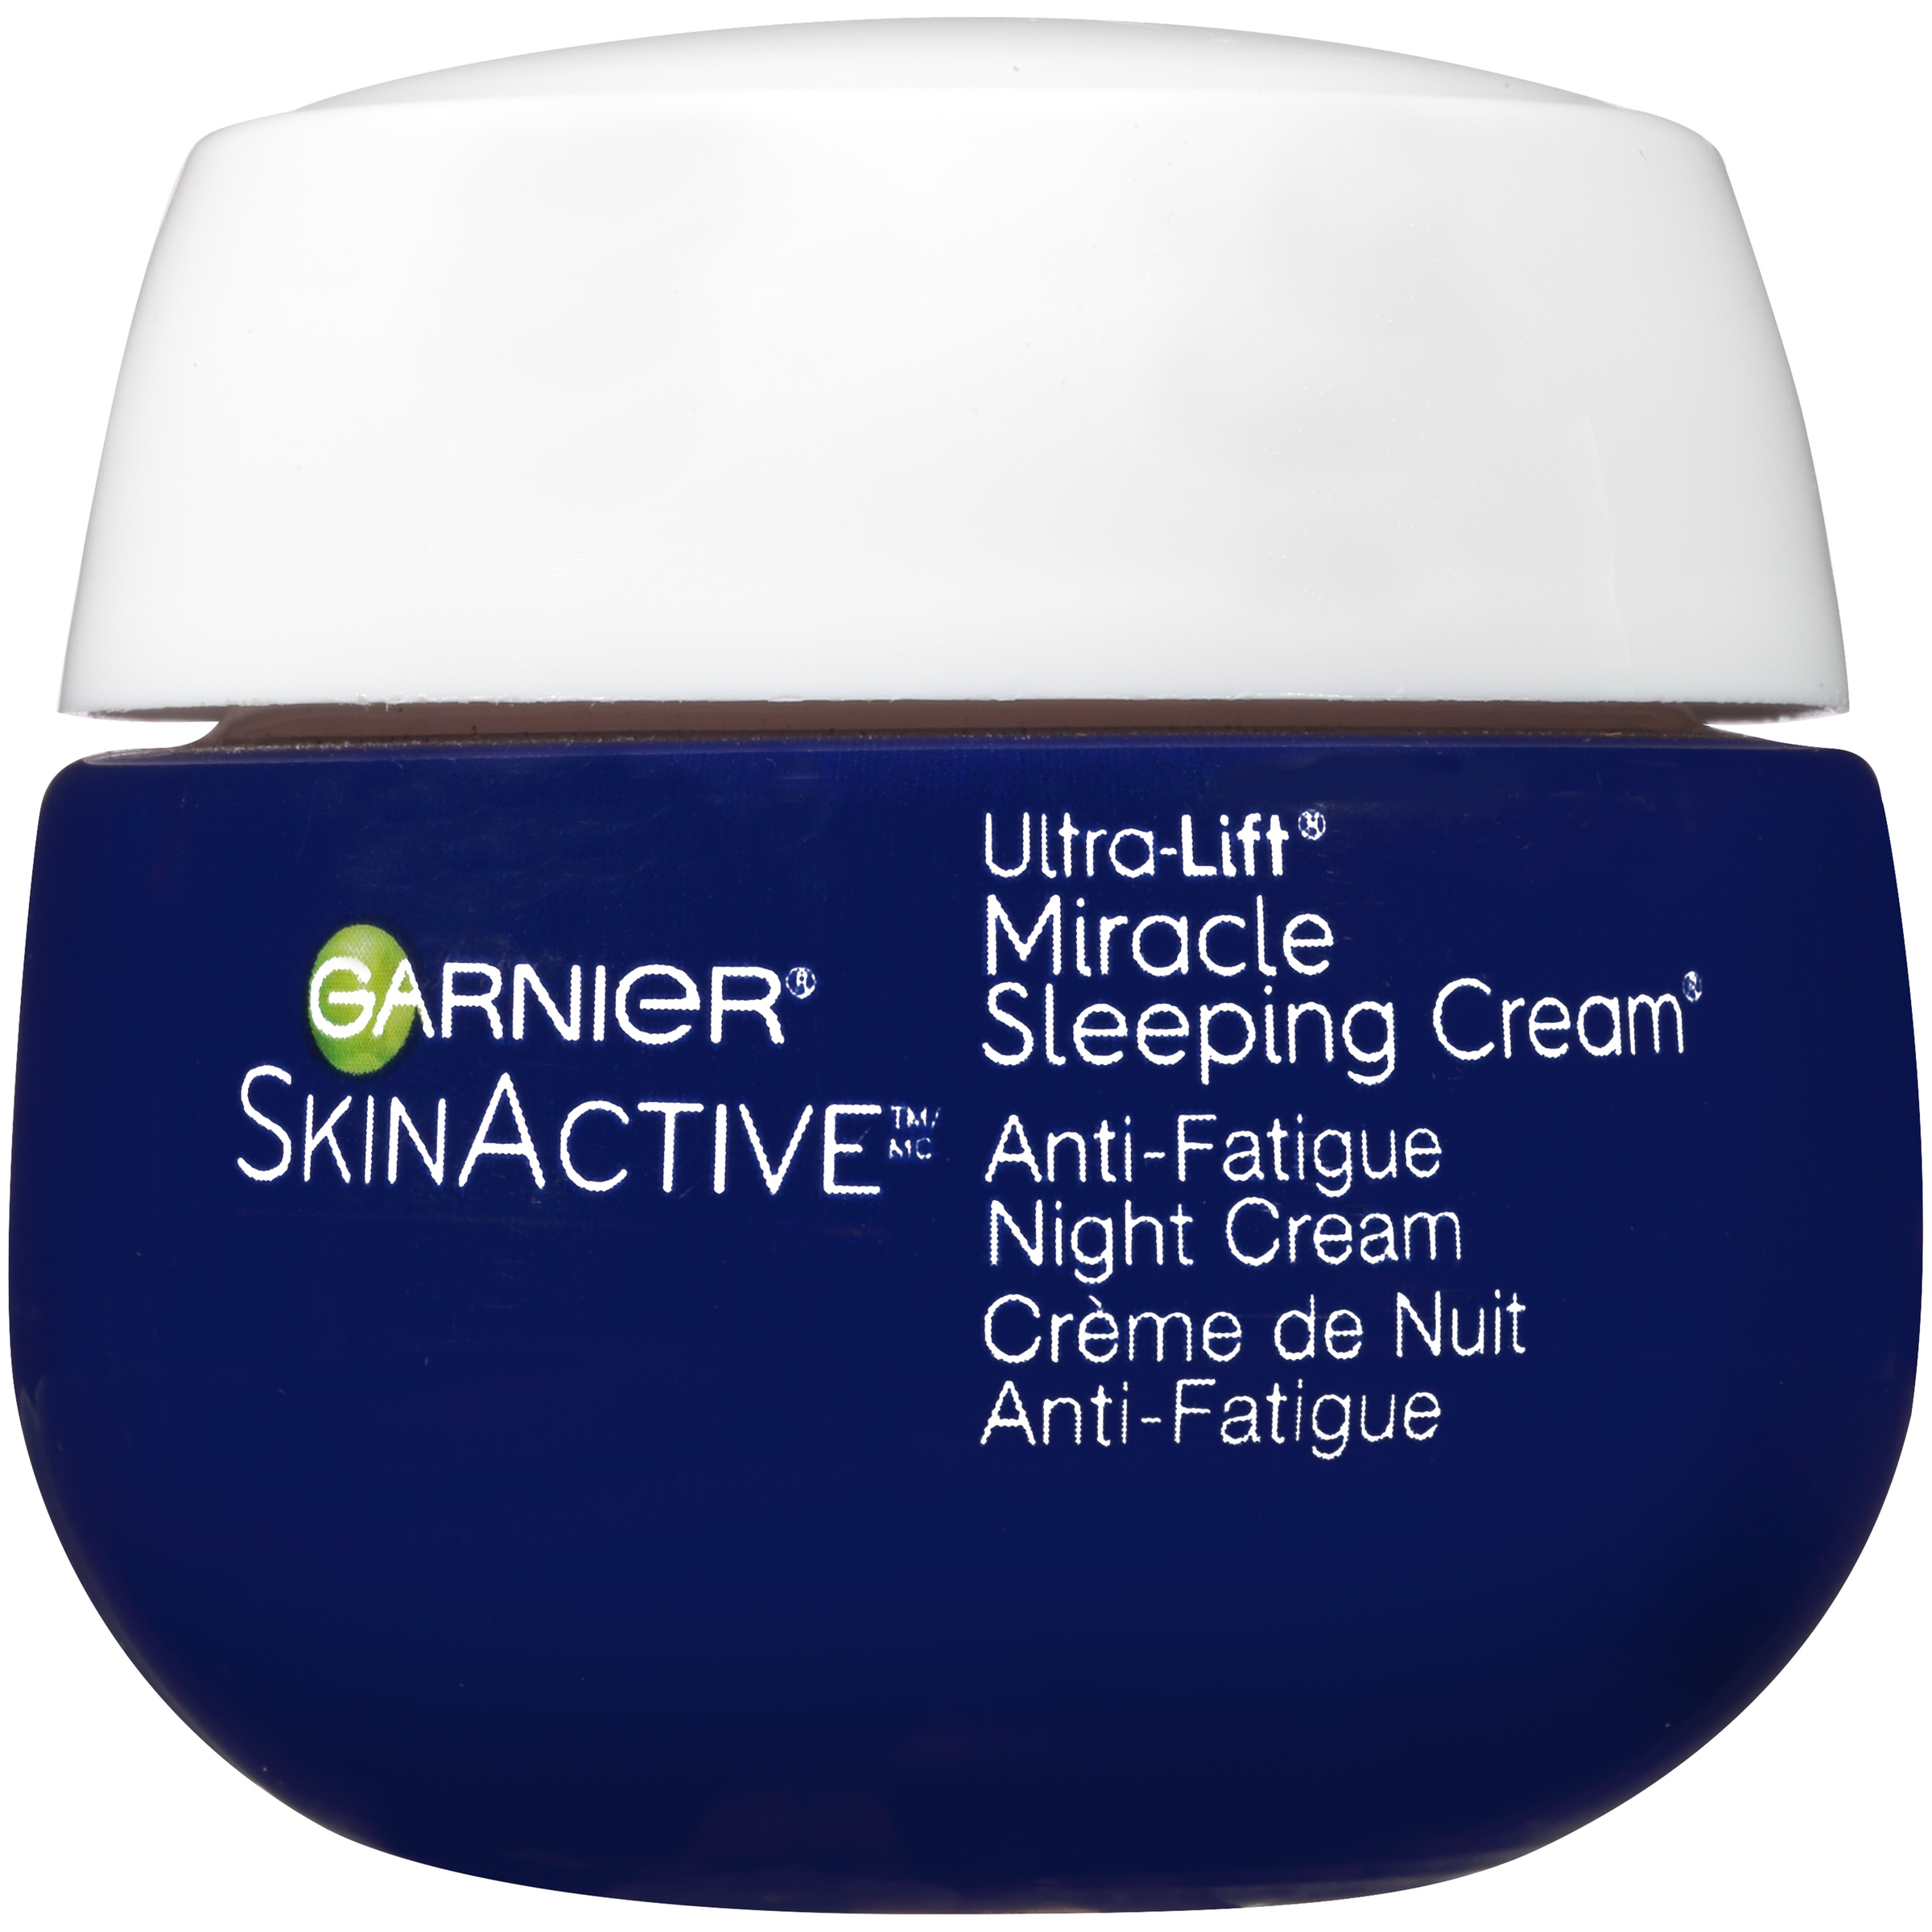 Garnier SkinActive Miracle Anti-Fatigue Night Sleeping Cream 1.7 oz. Box